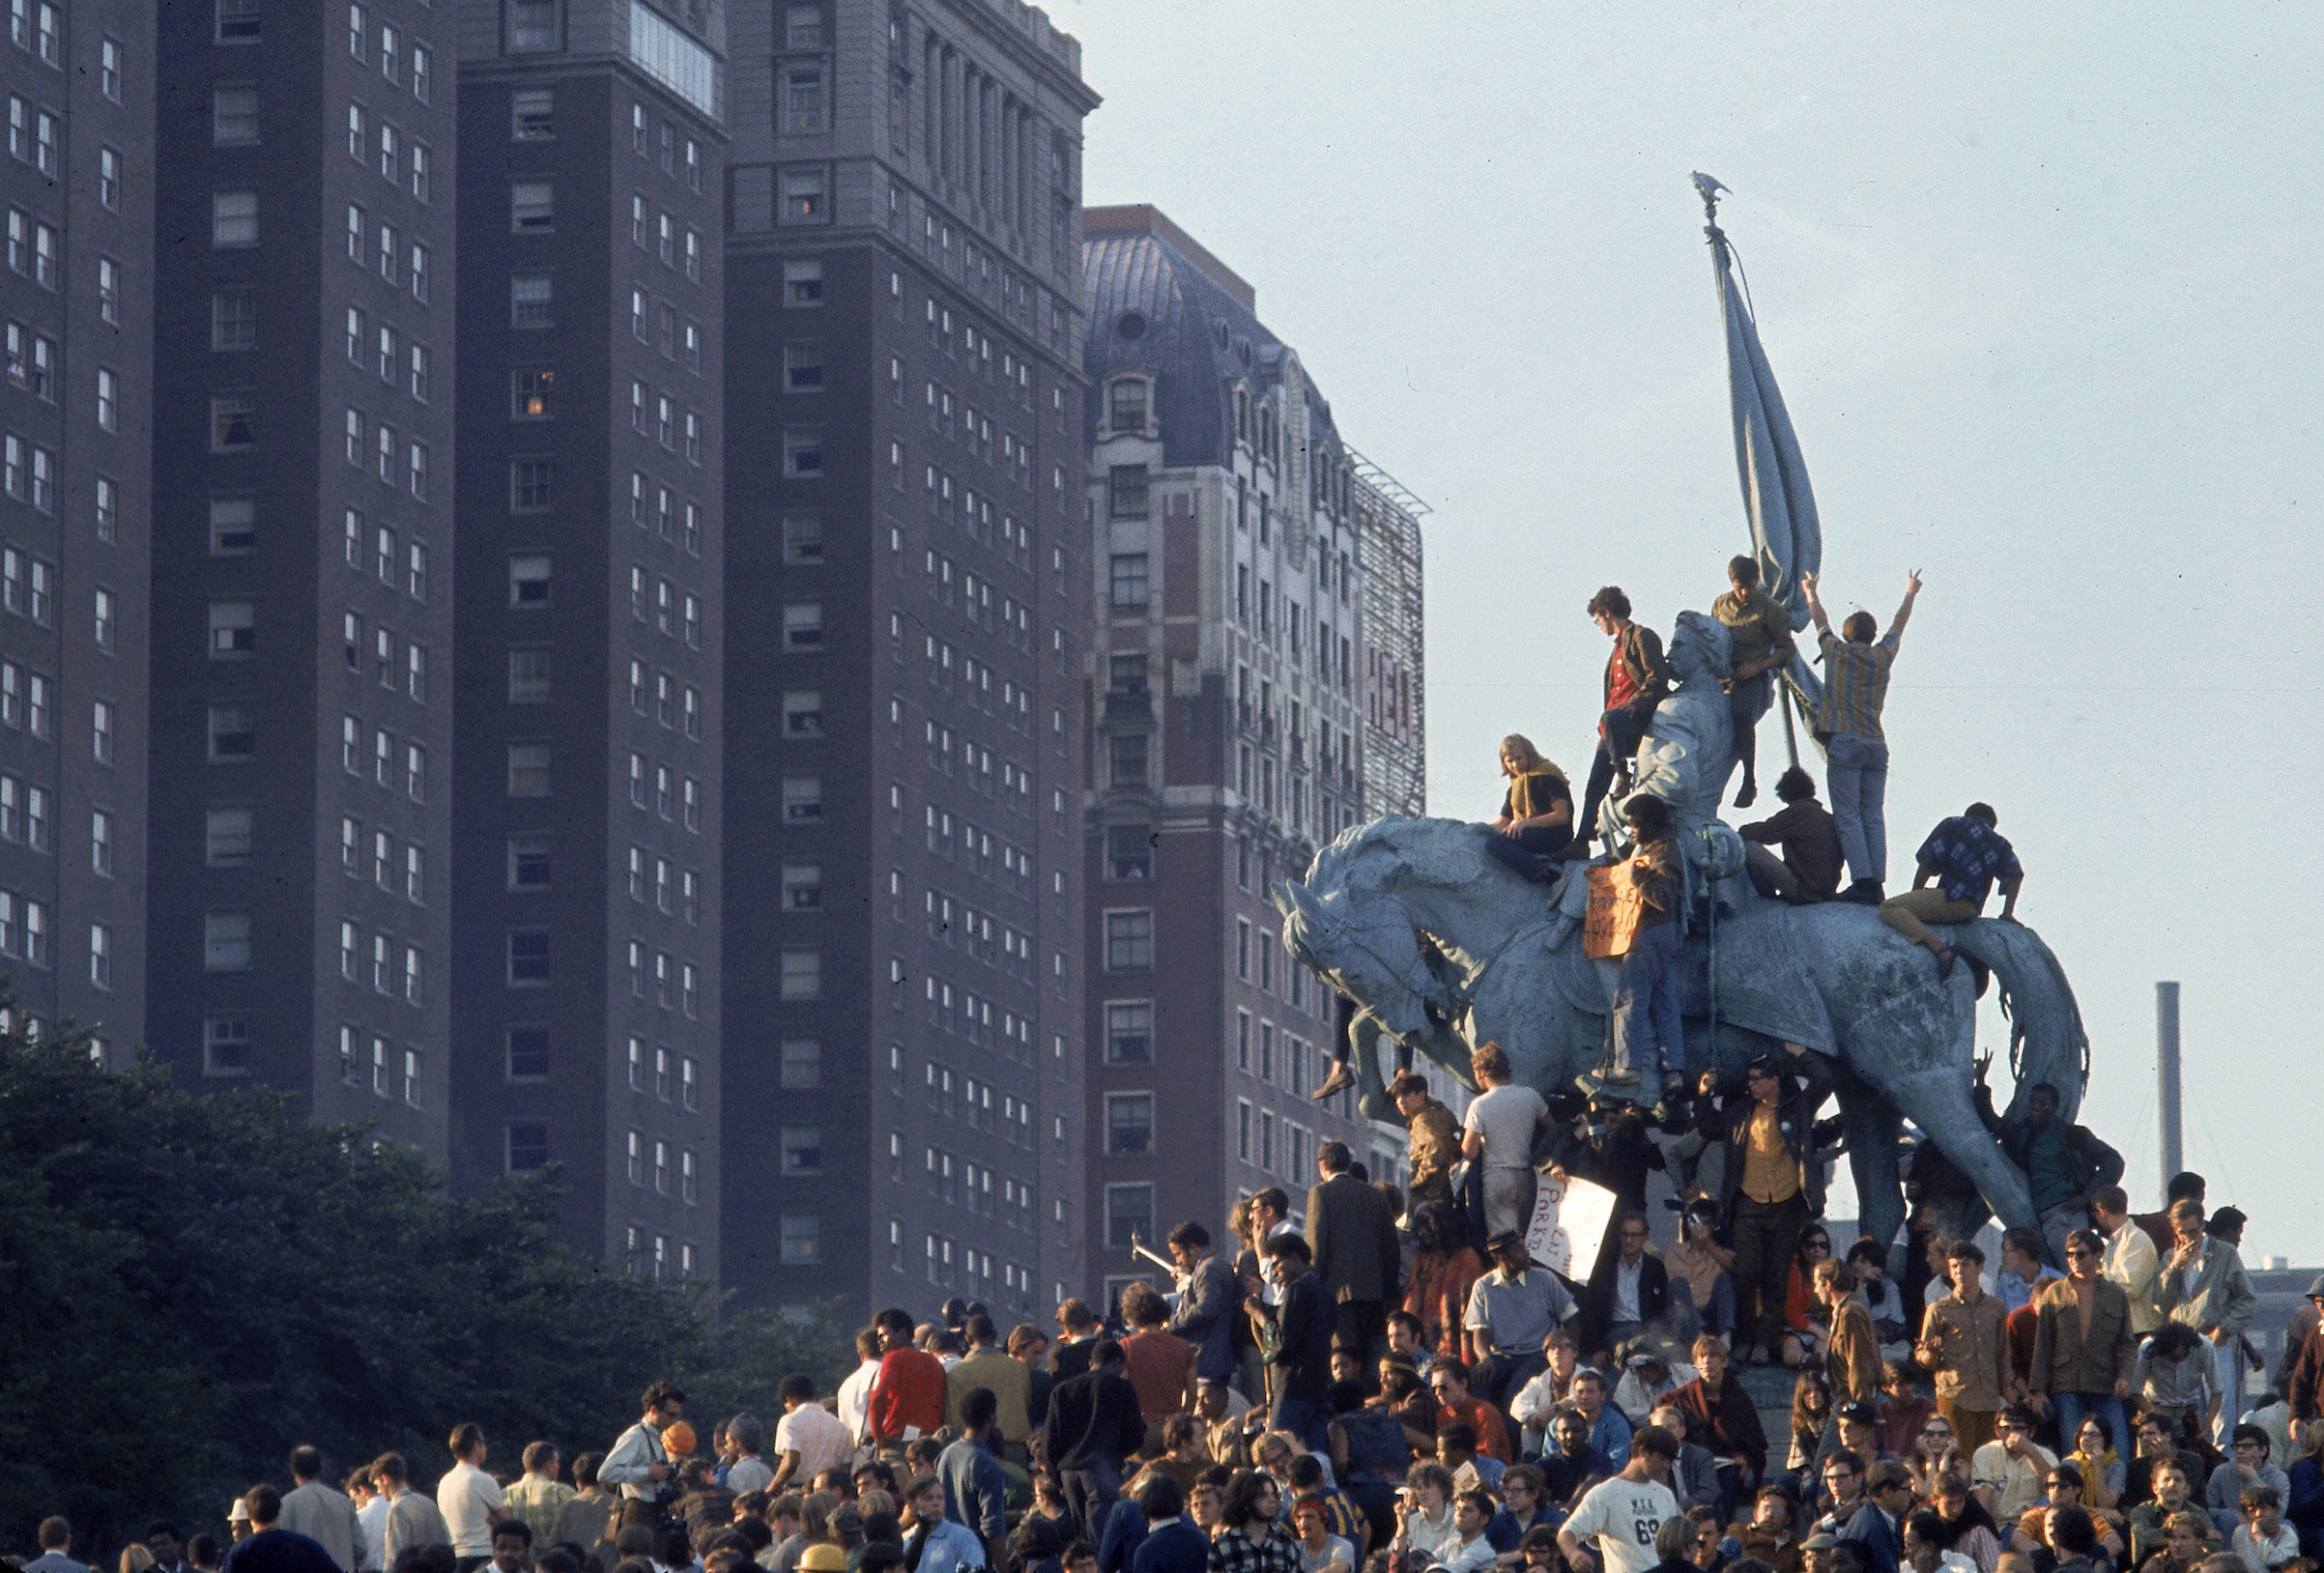 Yippie demonstrators swarming a statue in Grant Park during the 1968 Democratic National Convention.